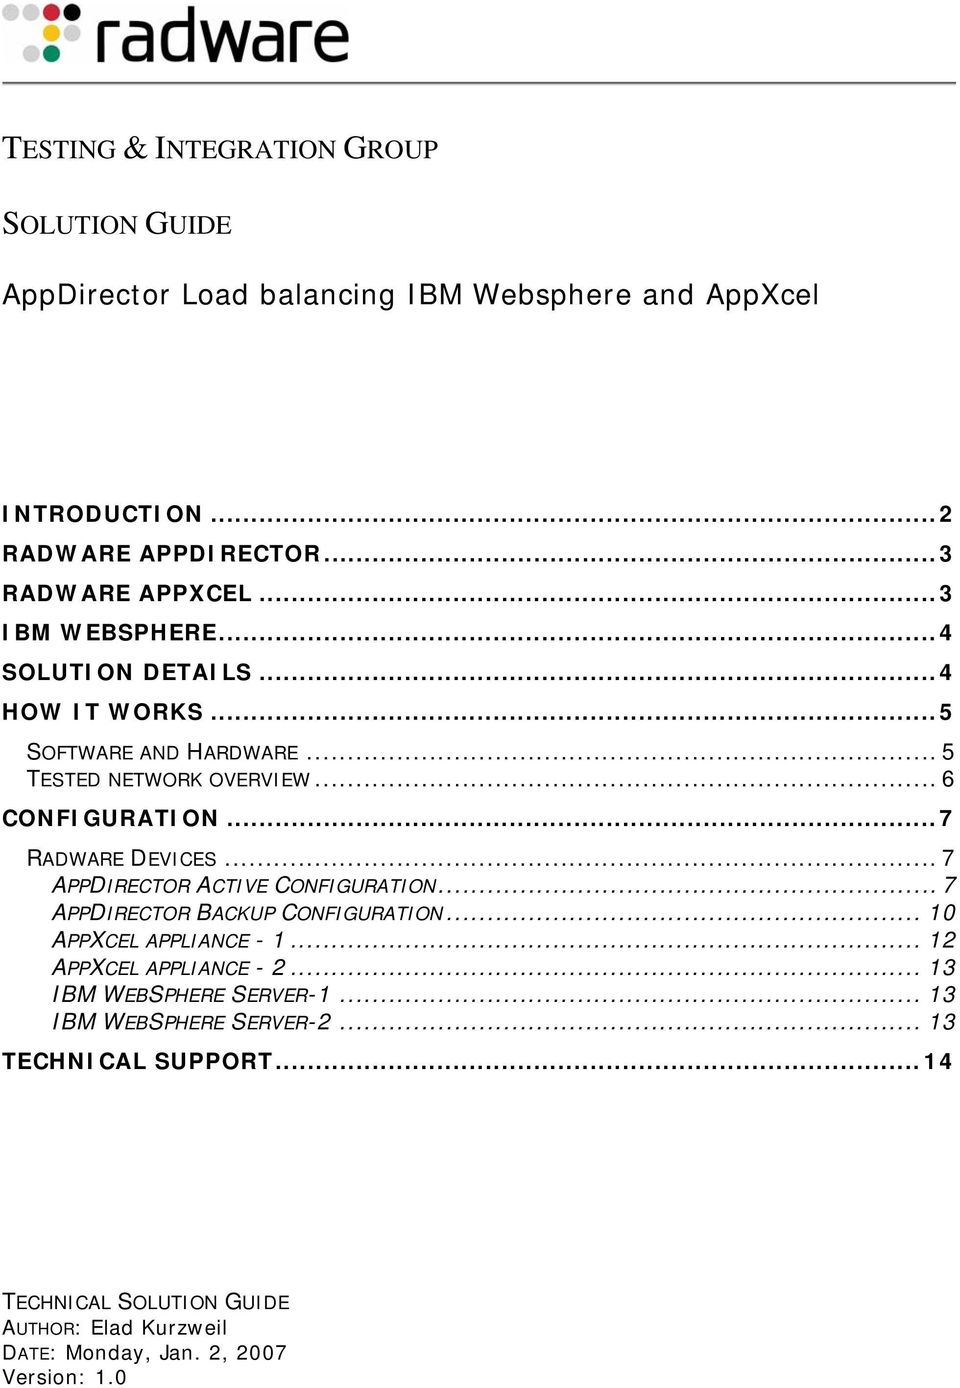 .. 7 APPDIRECTOR ACTIVE CONFIGURATION... 7 APPDIRECTOR BACKUP CONFIGURATION... 10 APPXCEL APPLIANCE - 1... 12 APPXCEL APPLIANCE - 2.